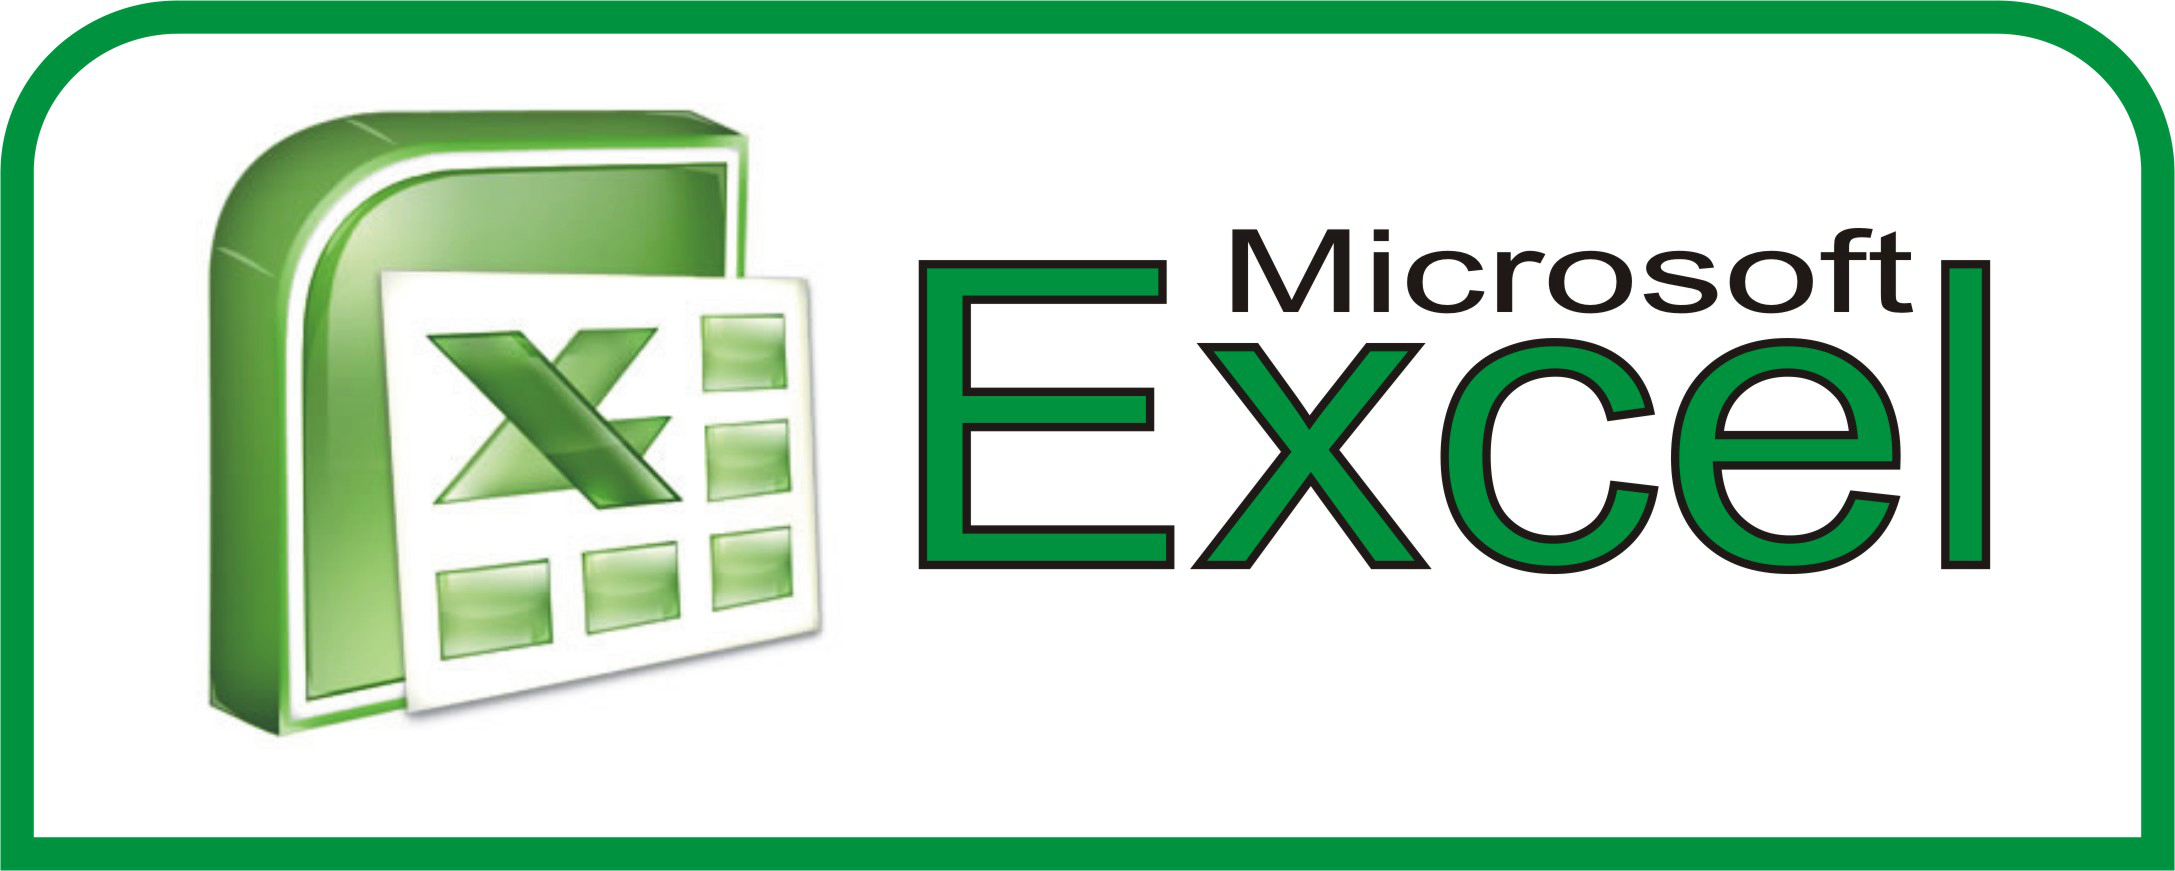 Ediblewildsus  Marvelous  Excel Shortcuts You Probably Didnt Know About  Techdissected With Extraordinary Substr In Excel Besides How To Hide All Comments In Excel Furthermore Excel Autofill Shortcut With Charming Breakeven Analysis Excel Also Auto Fill Options Excel In Addition Microsoft Office Excel Tutorial And Excel Energy Jobs As Well As Excel Dot Product Additionally Excel Cell Drop Down From Techdissectedcom With Ediblewildsus  Extraordinary  Excel Shortcuts You Probably Didnt Know About  Techdissected With Charming Substr In Excel Besides How To Hide All Comments In Excel Furthermore Excel Autofill Shortcut And Marvelous Breakeven Analysis Excel Also Auto Fill Options Excel In Addition Microsoft Office Excel Tutorial From Techdissectedcom